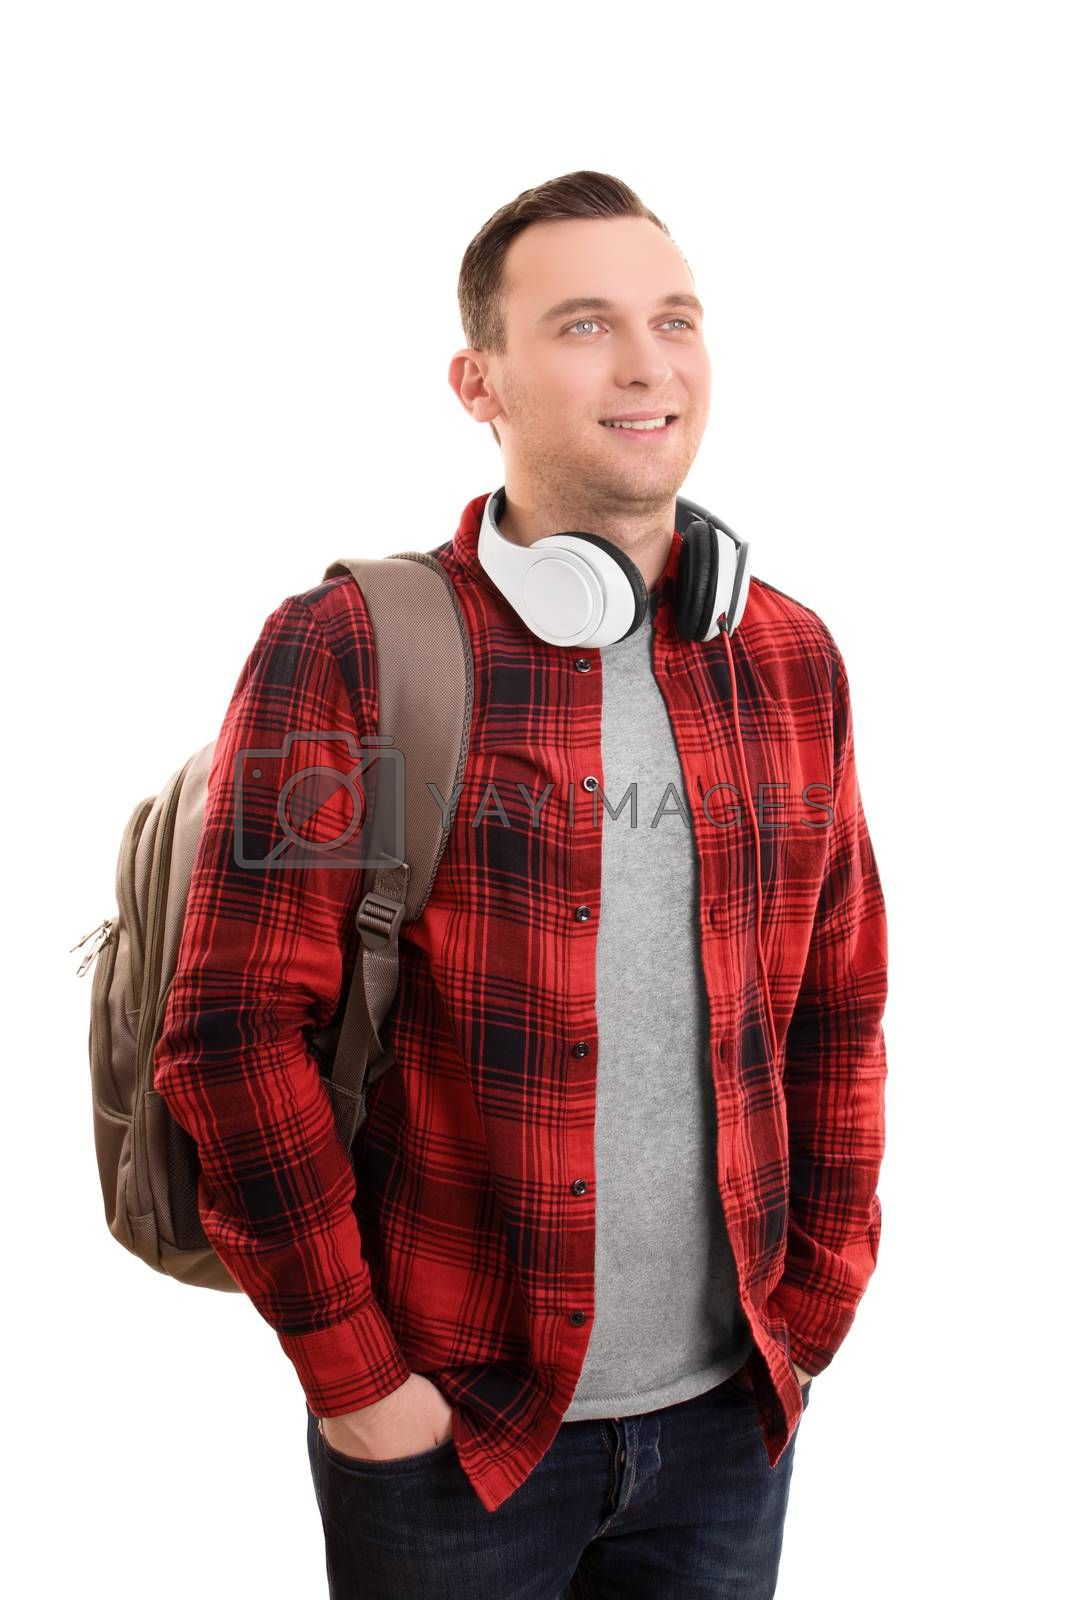 A portrait of a smiling male student, wearing a backpack and headphones, isolated on white background.